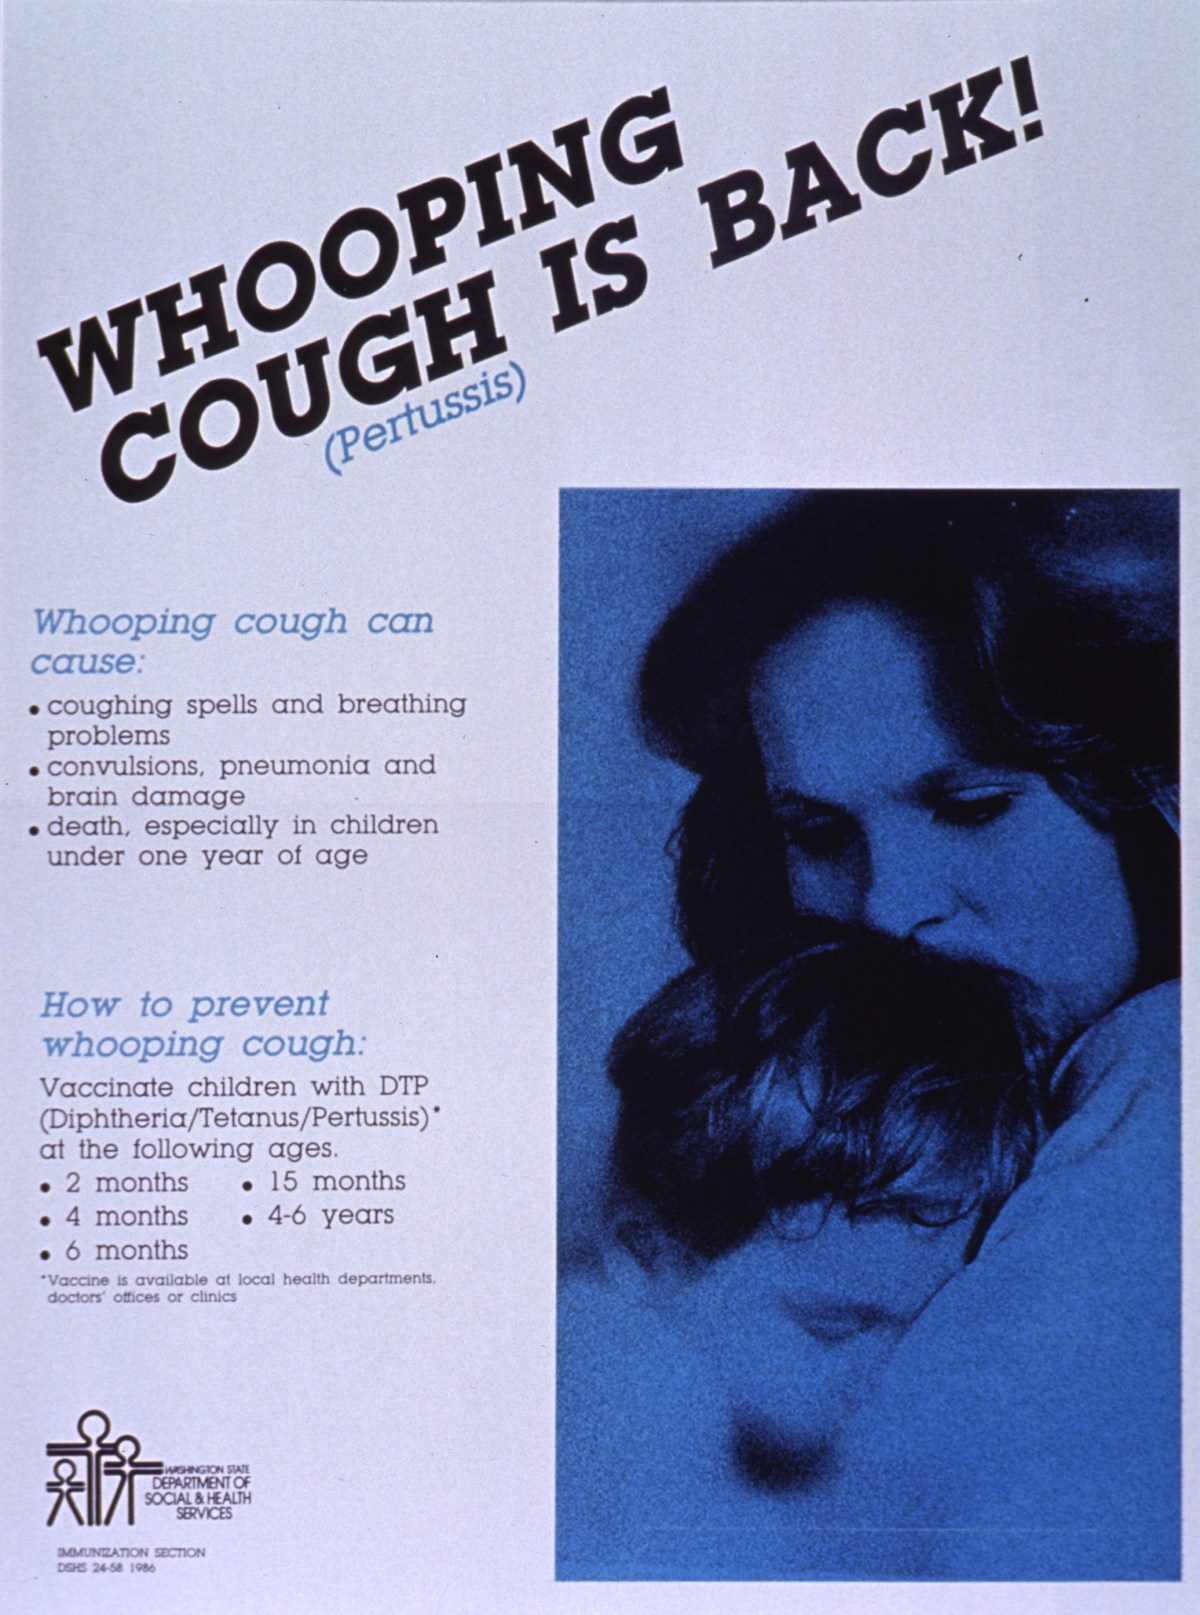 DTP and DTaP protect against diphtheria, tetanus, and whooping cough.